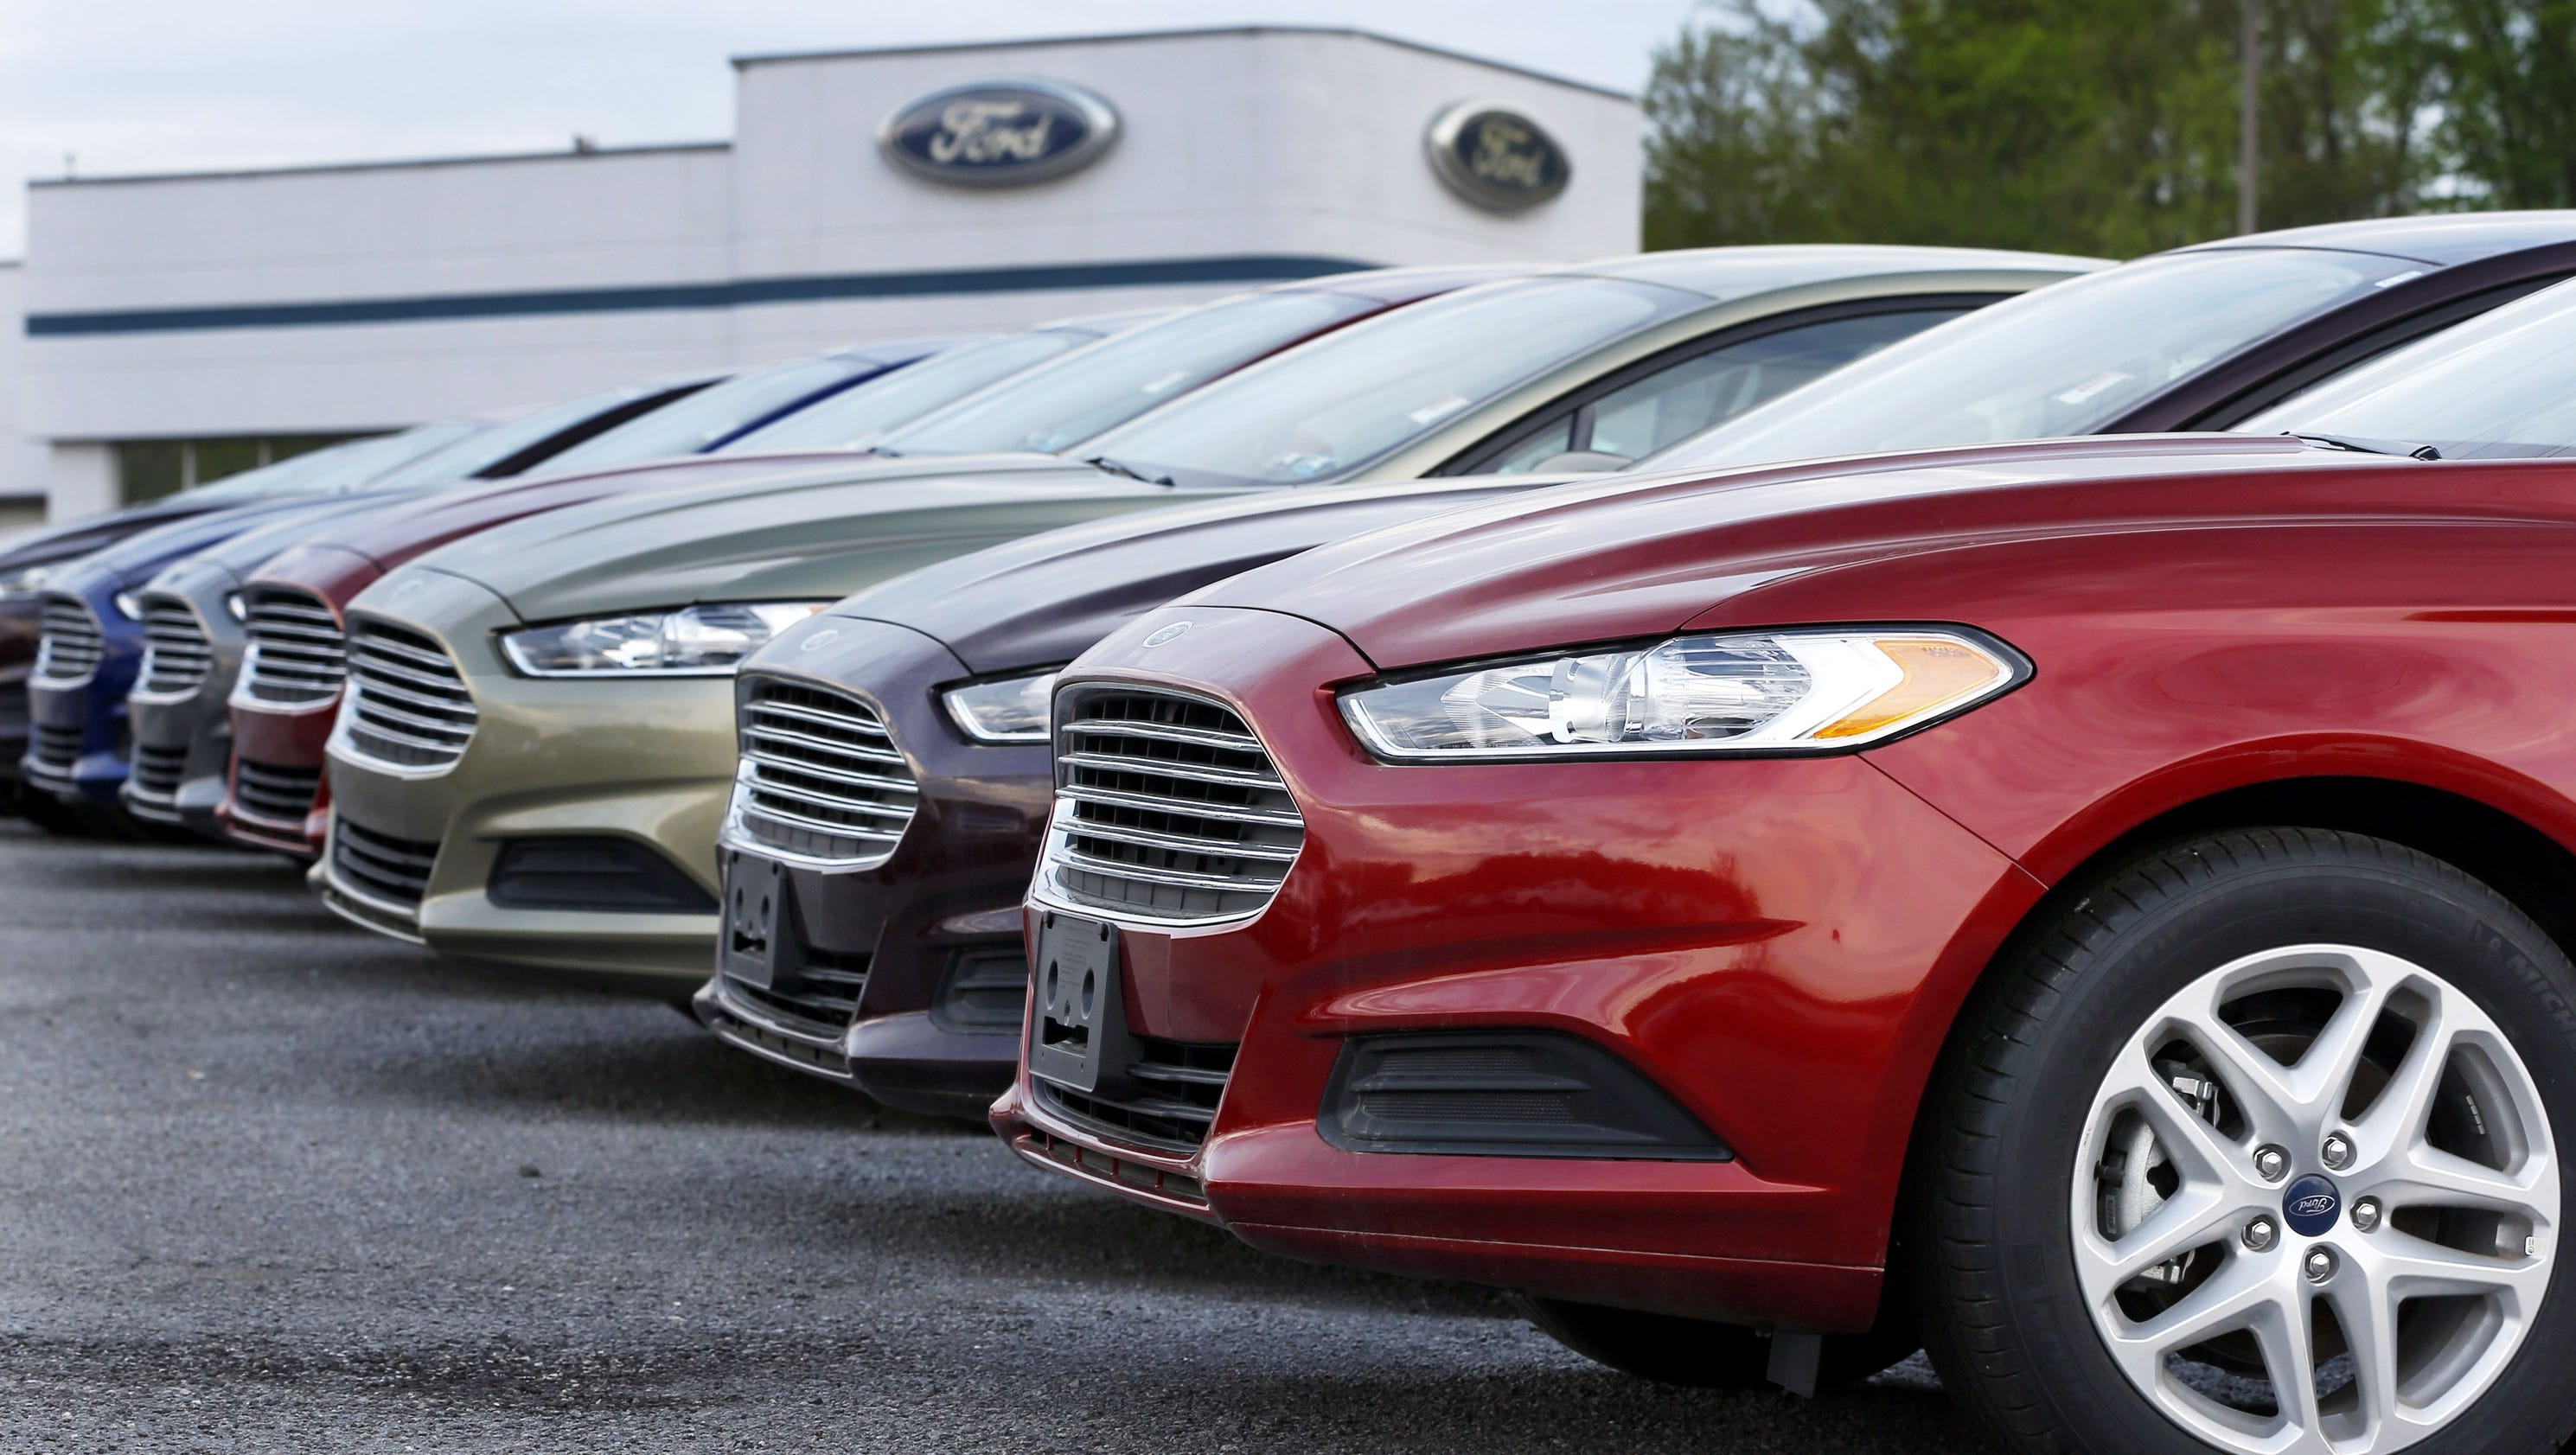 auto sales likely to continue falling in 2nd half of 2017